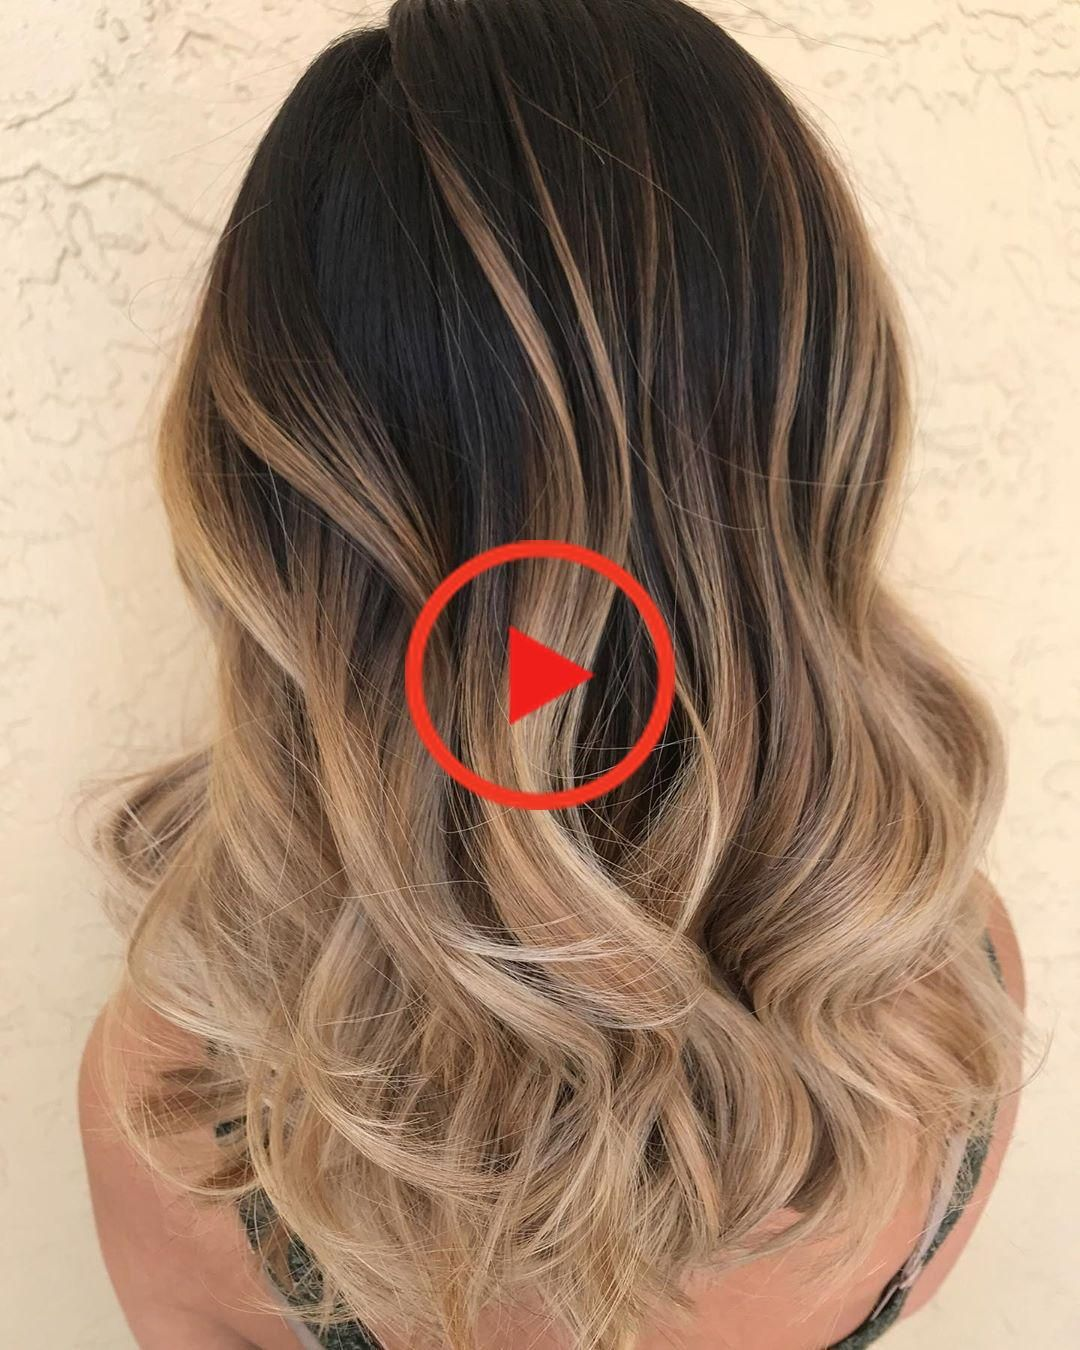 Toasty Melt Hair Color Is Here, and It's as Delectable as It Sounds